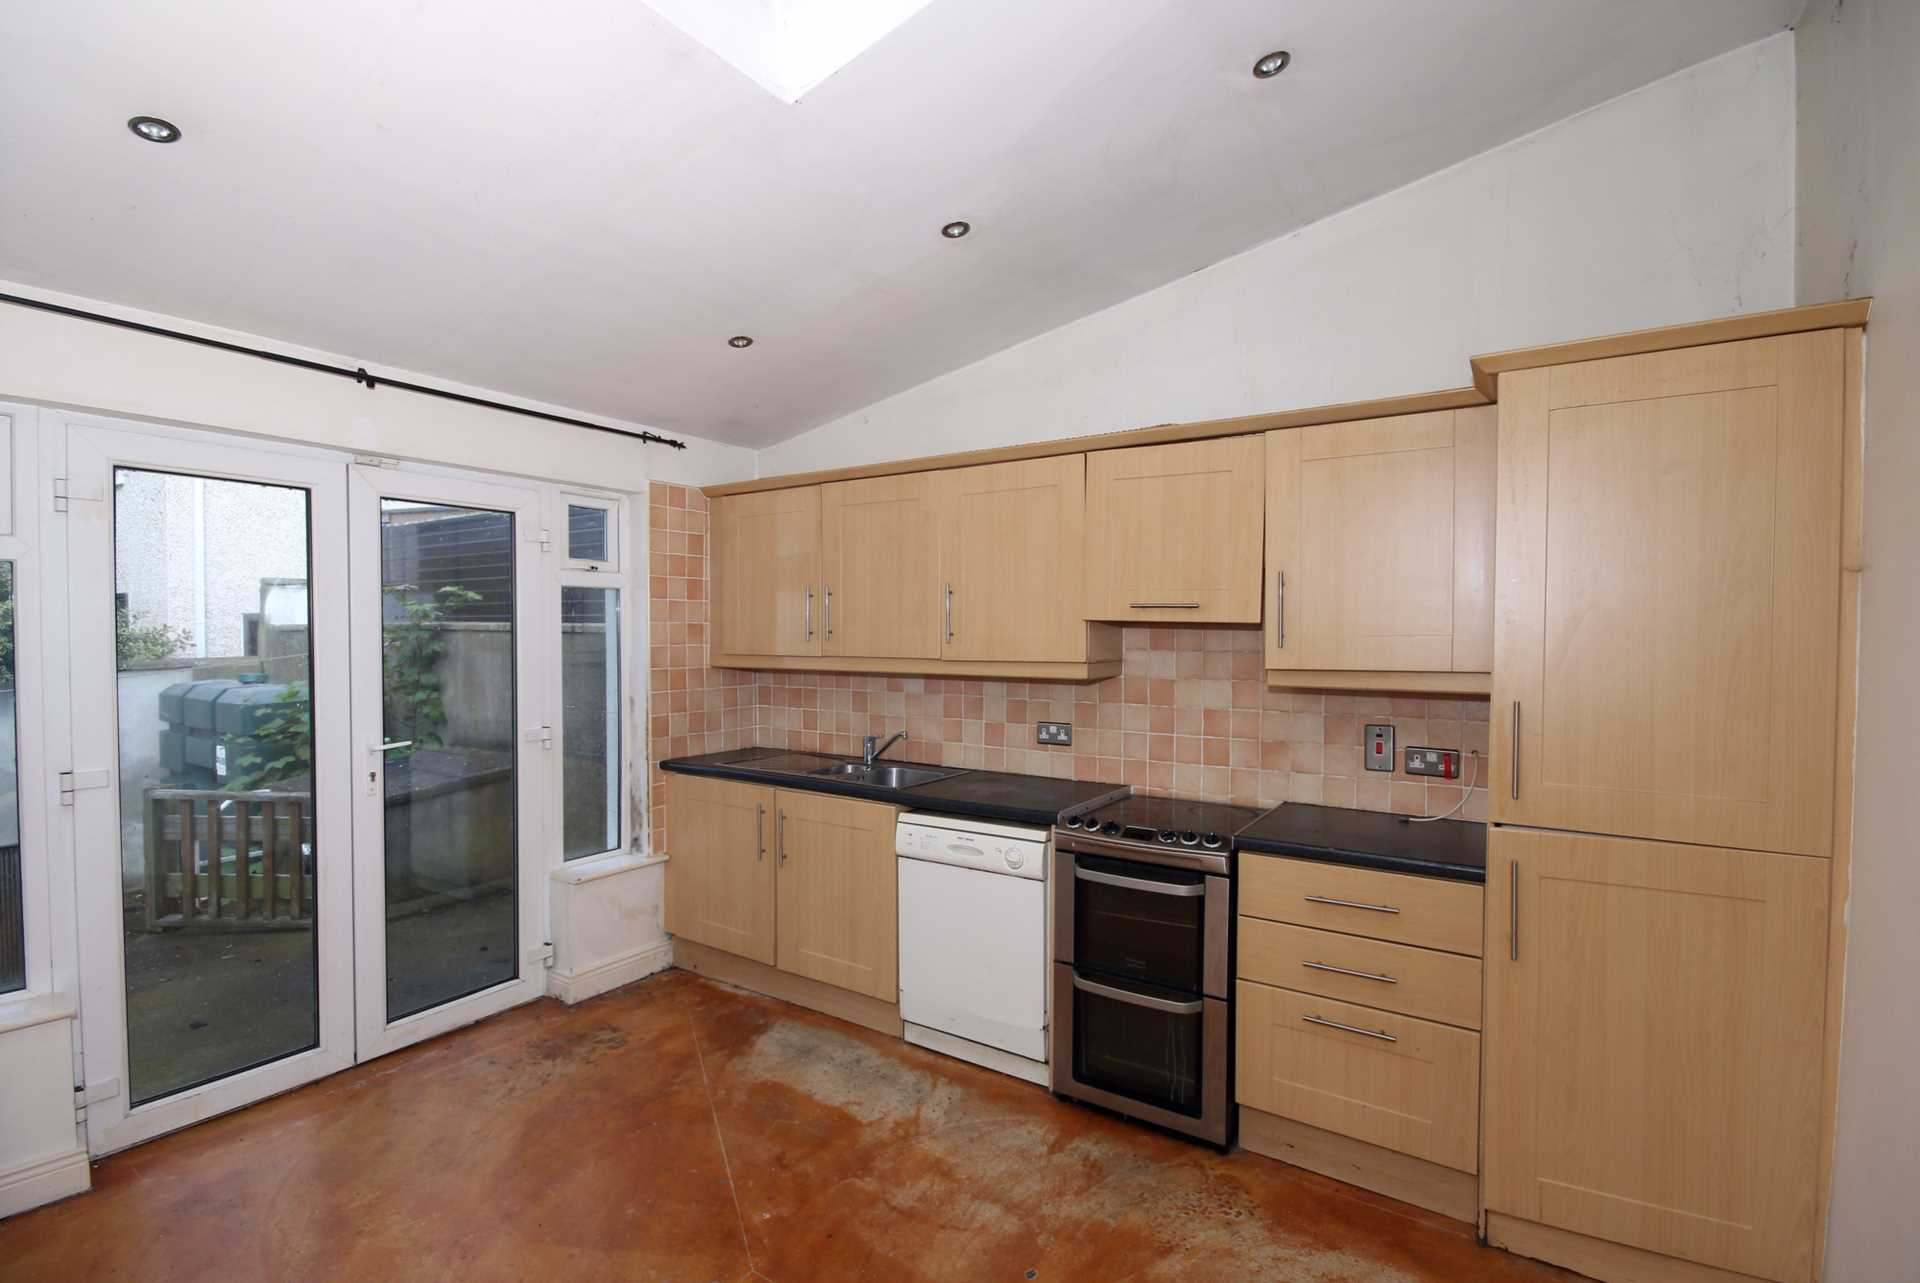 9A Raheen Avenue, Tallaght, Dublin 24, Image 3